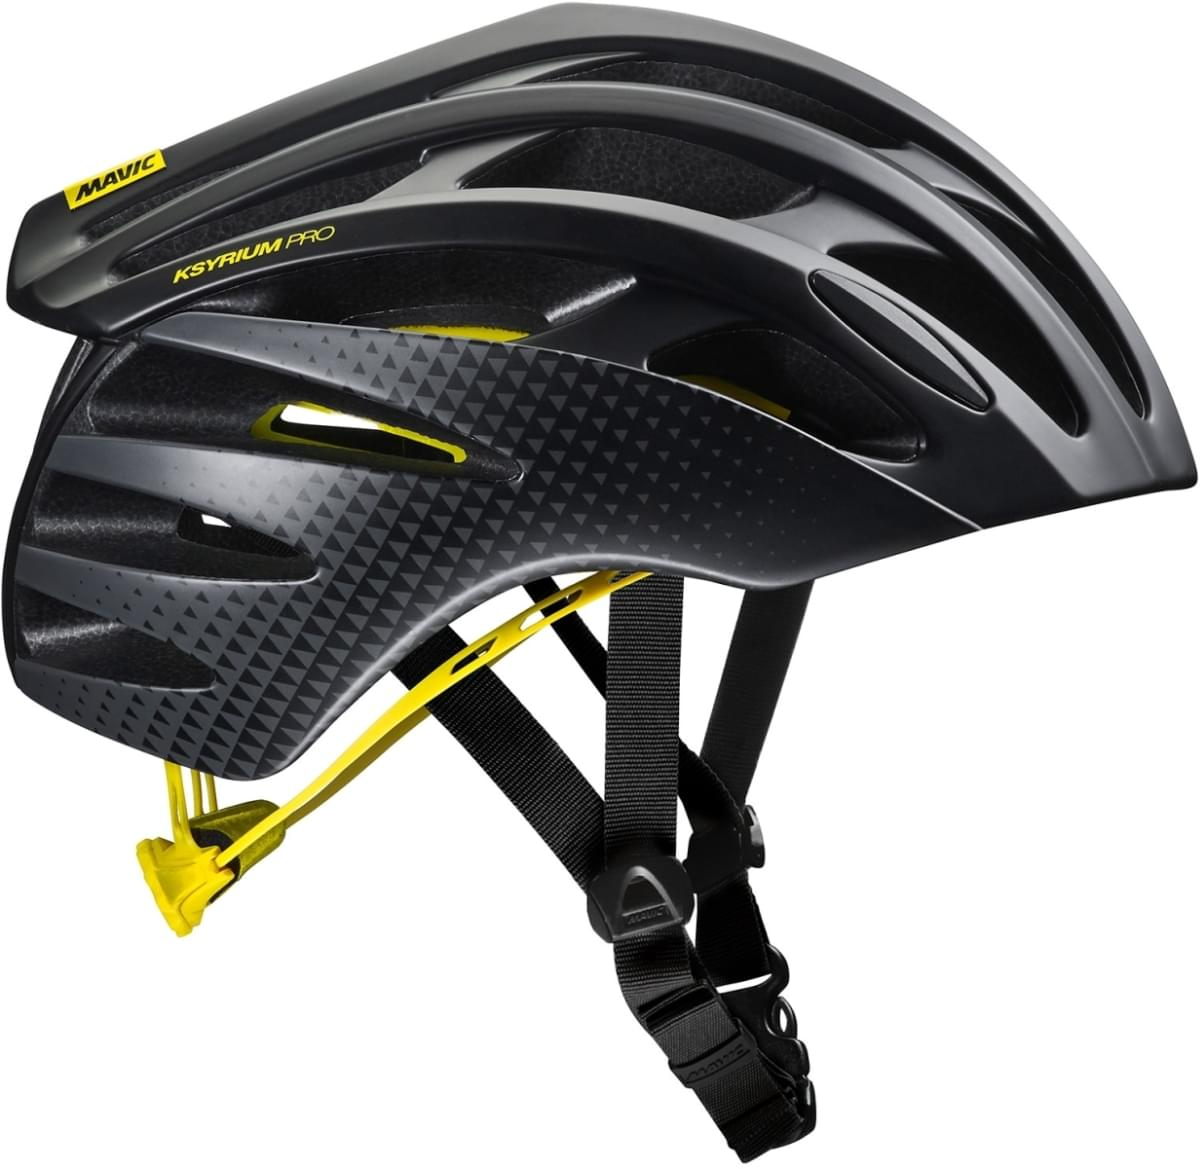 Mavic Ksyrium Pro Helmet - black/yellow M